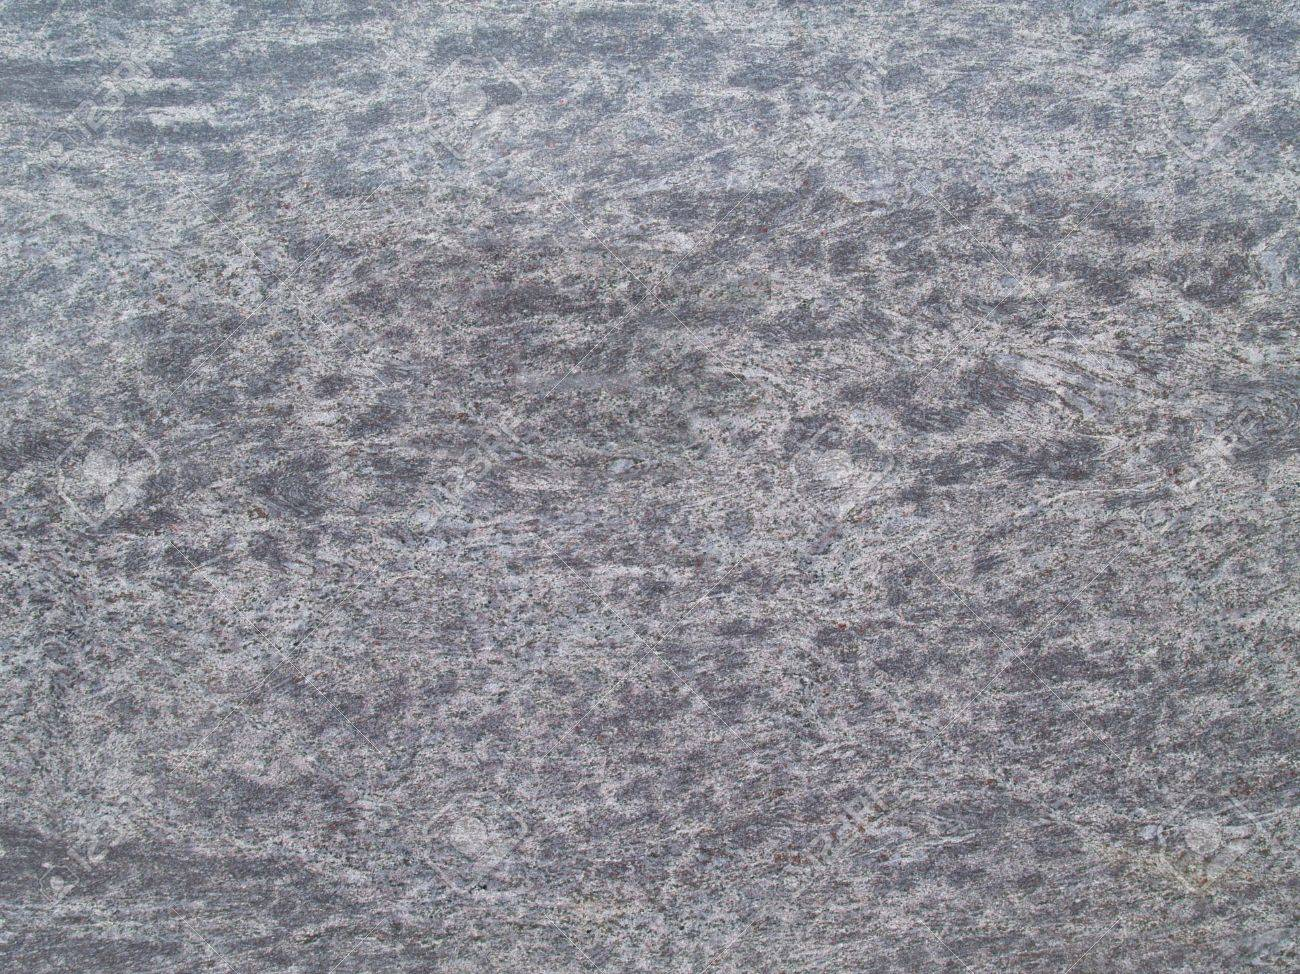 Black and gray spotted marbled grunge texture. Stock Photo - 6673766